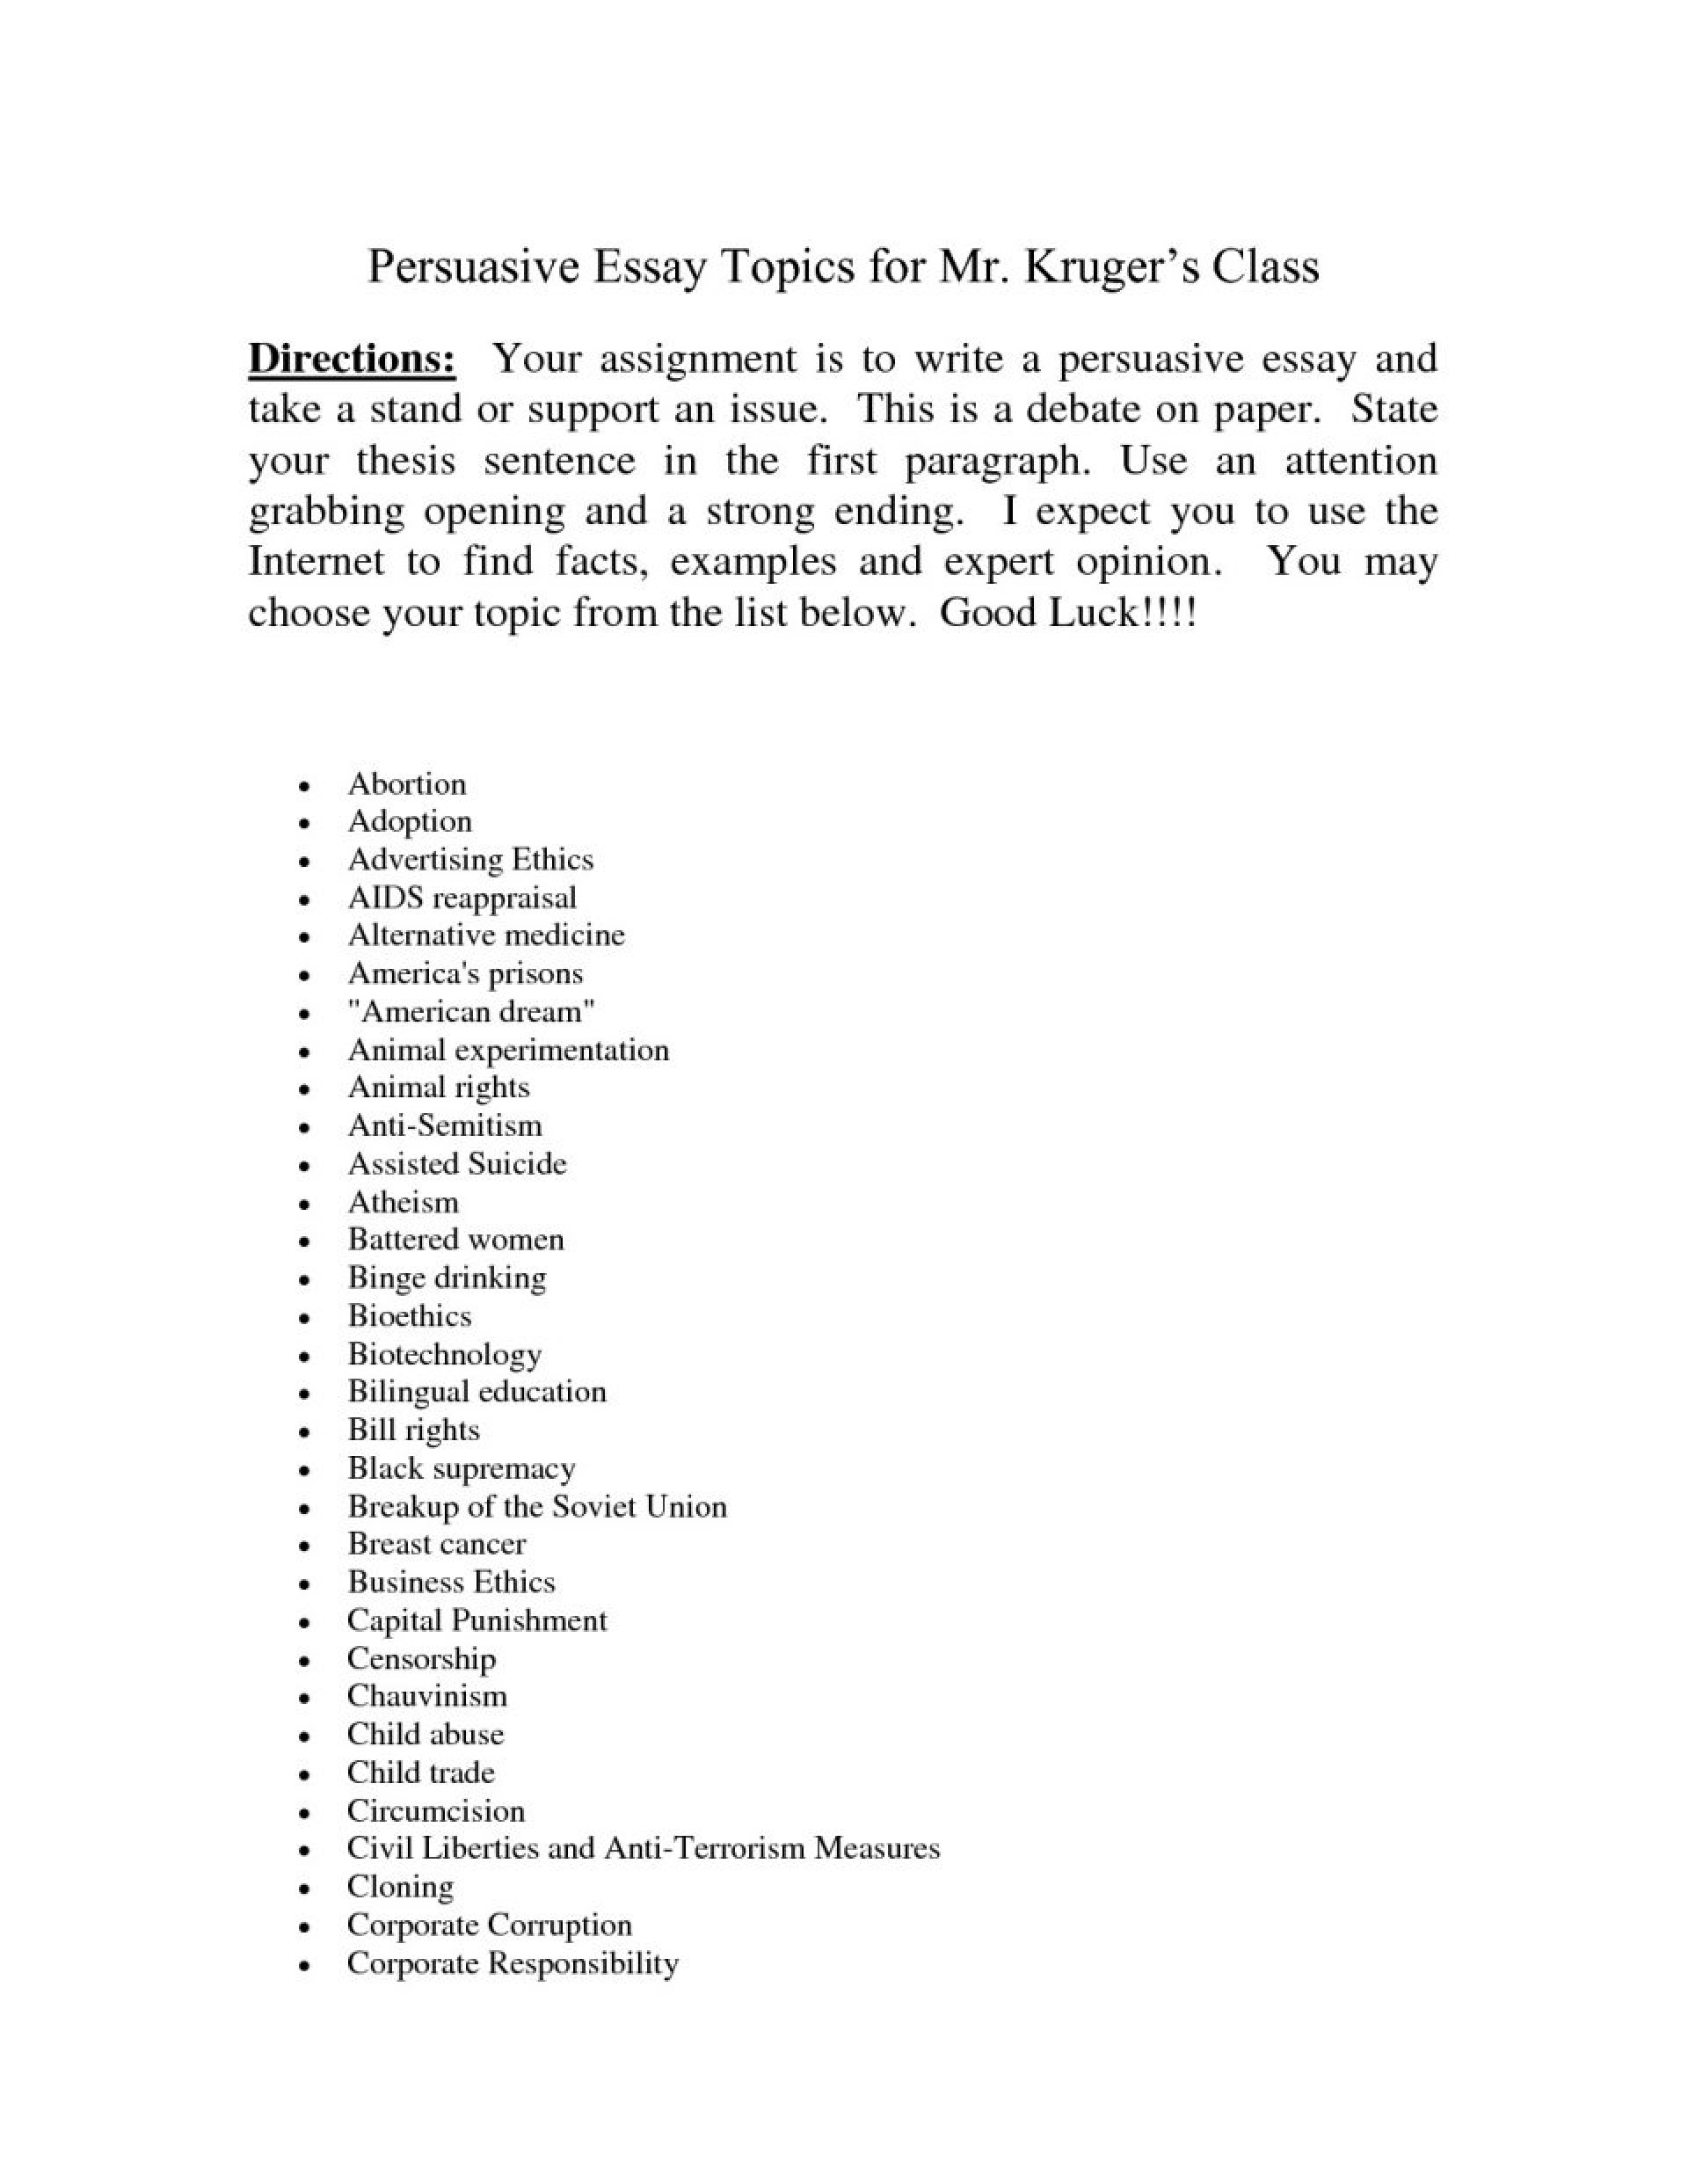 007 Research Paper Topic For Essay Barca Fontanacountryinn Within Good Persuasive Narrative Topics To Write Abo Easy About Personal Descriptive Informative Synthesis College Wondrous A Argumentative Interesting Us History 1920